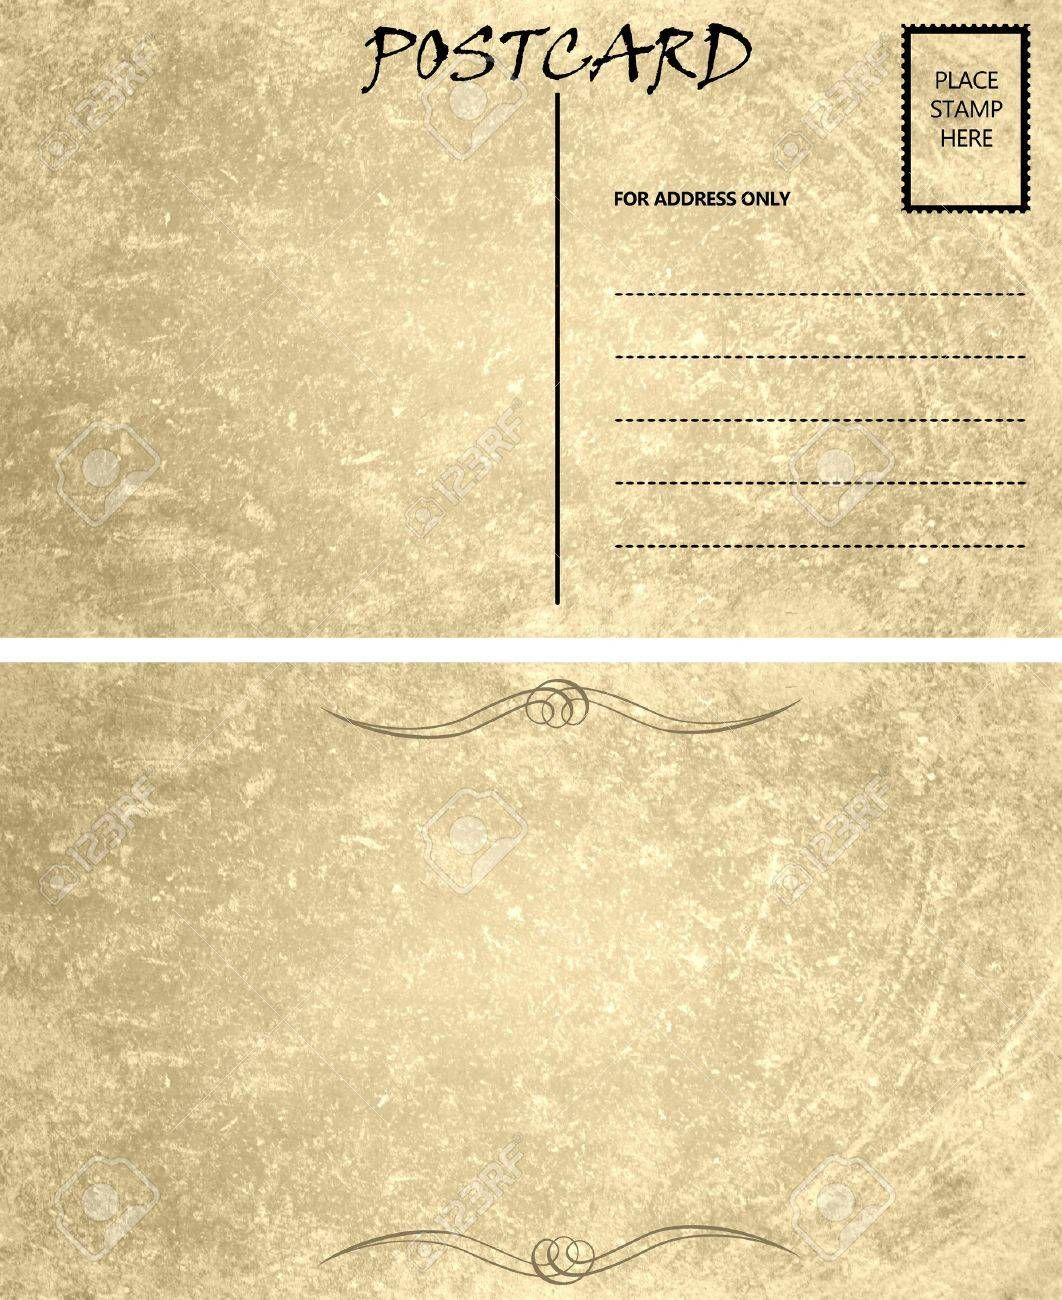 003 Impressive Postcard Template Front And Back Inspiration  Free WordFull